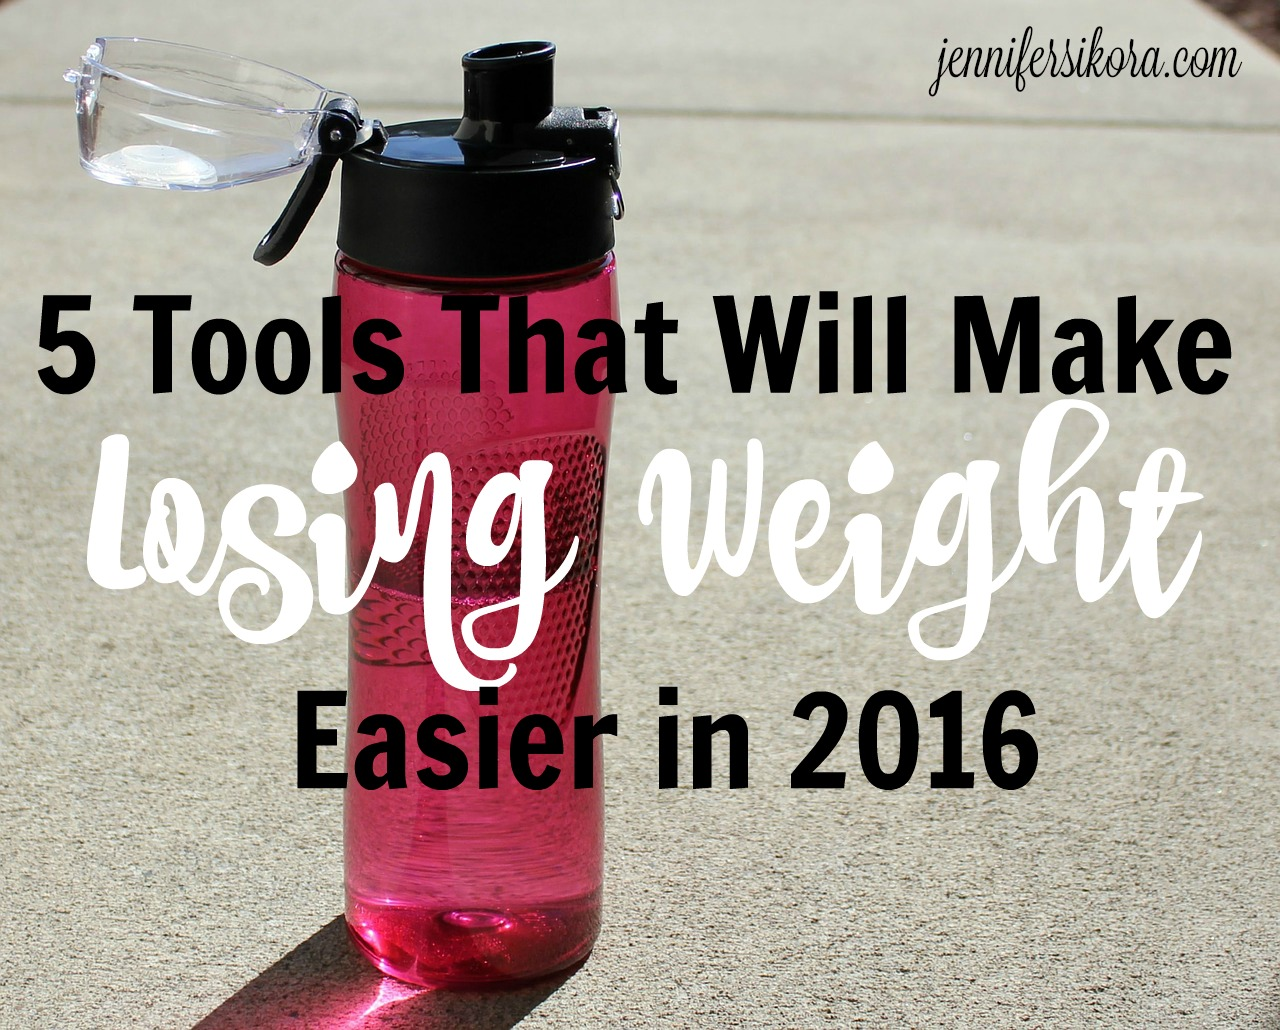 5 Tools That Will Make Losing Weight Easier in 2016